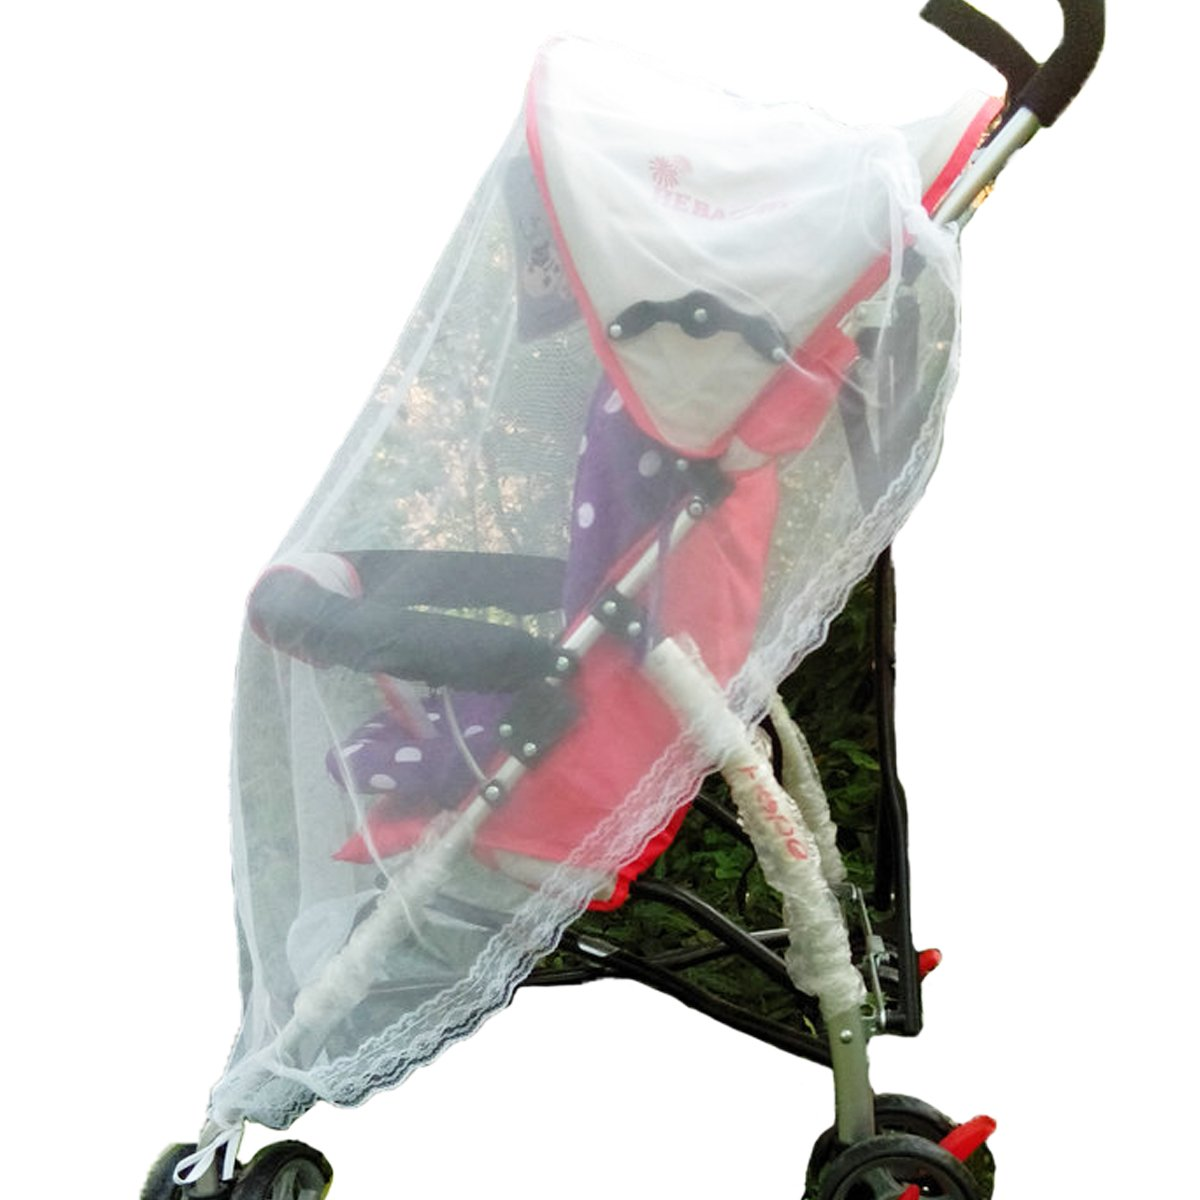 Baby Mosquito Net for Strollers, Carriers, Car Seats, Cradles. Fits Most PacknPlays, Cribs, Bassinets & Playpens. 39 x 43 inch, Made of White, Portable & Durable Baby Insect Netting (White) Aunavey